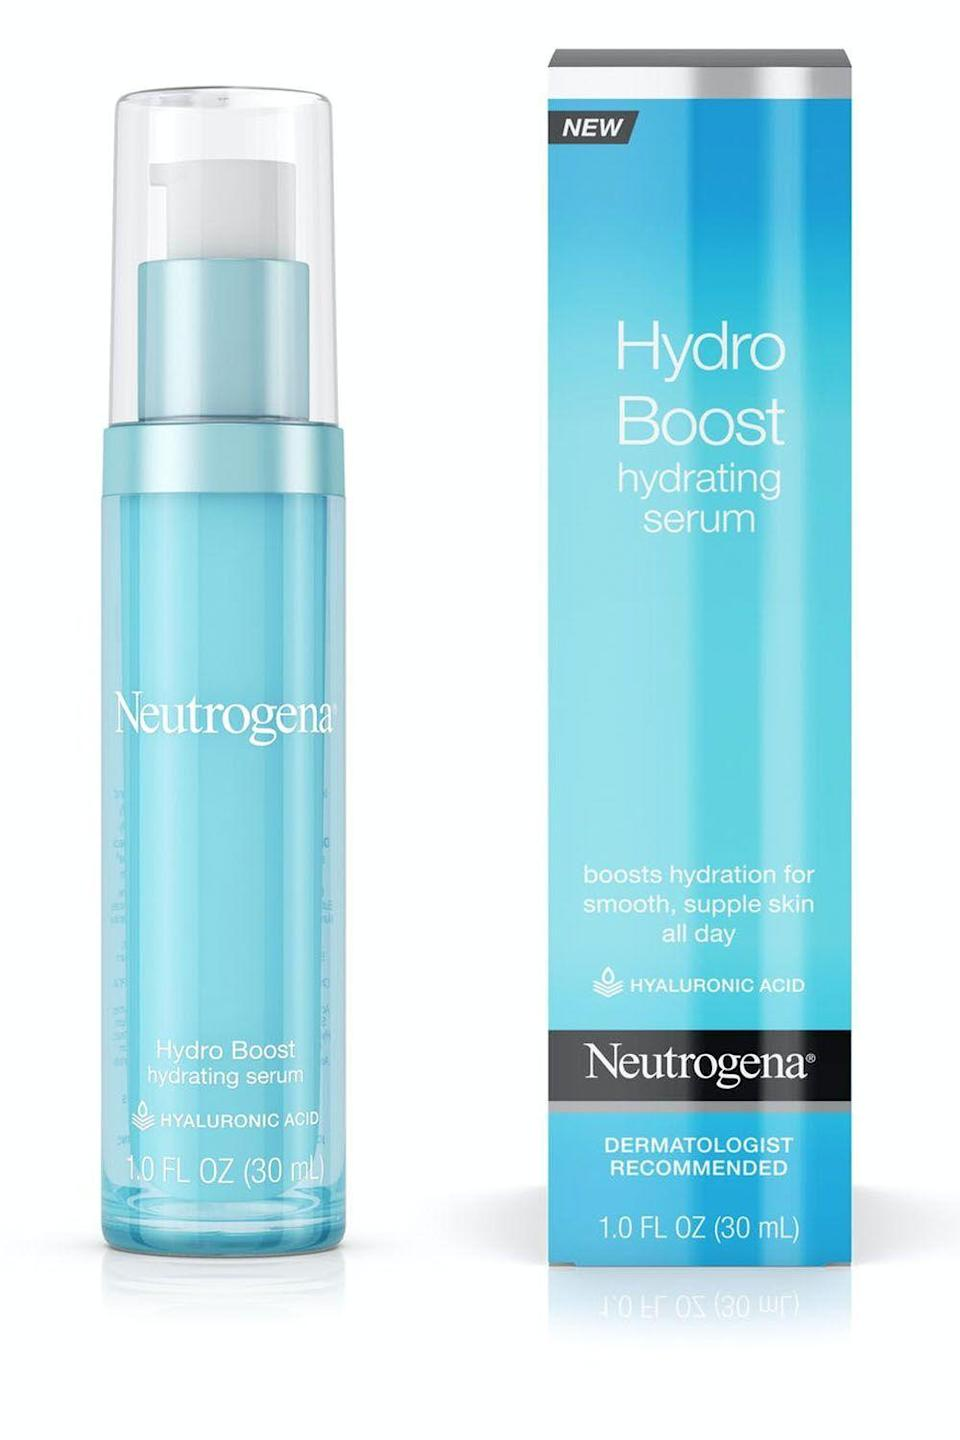 """<p><strong>Neutrogena</strong></p><p>amazon.com</p><p><strong>$19.99</strong></p><p><a href=""""https://www.amazon.com/dp/B01HOHBS7K?tag=syn-yahoo-20&ascsubtag=%5Bartid%7C10049.g.32934142%5Bsrc%7Cyahoo-us"""" rel=""""nofollow noopener"""" target=""""_blank"""" data-ylk=""""slk:Shop Now"""" class=""""link rapid-noclick-resp"""">Shop Now</a></p><p>Like I said, loading up your skin with too many drying products can lead to the overproduction of oil and more breakouts down the road. This <a href=""""https://www.cosmopolitan.com/style-beauty/beauty/g28668988/best-drugstore-skincare/"""" rel=""""nofollow noopener"""" target=""""_blank"""" data-ylk=""""slk:drugstore"""" class=""""link rapid-noclick-resp"""">drugstore</a> hyaluronic acid-filled formula actually tackles dryness instead of masking it, and it's oil-free and non-comedogenic (meaning it won't clog your pores). Translation: It will <strong>keep your skin balanced and hydrated without breaking the budget.</strong> </p>"""